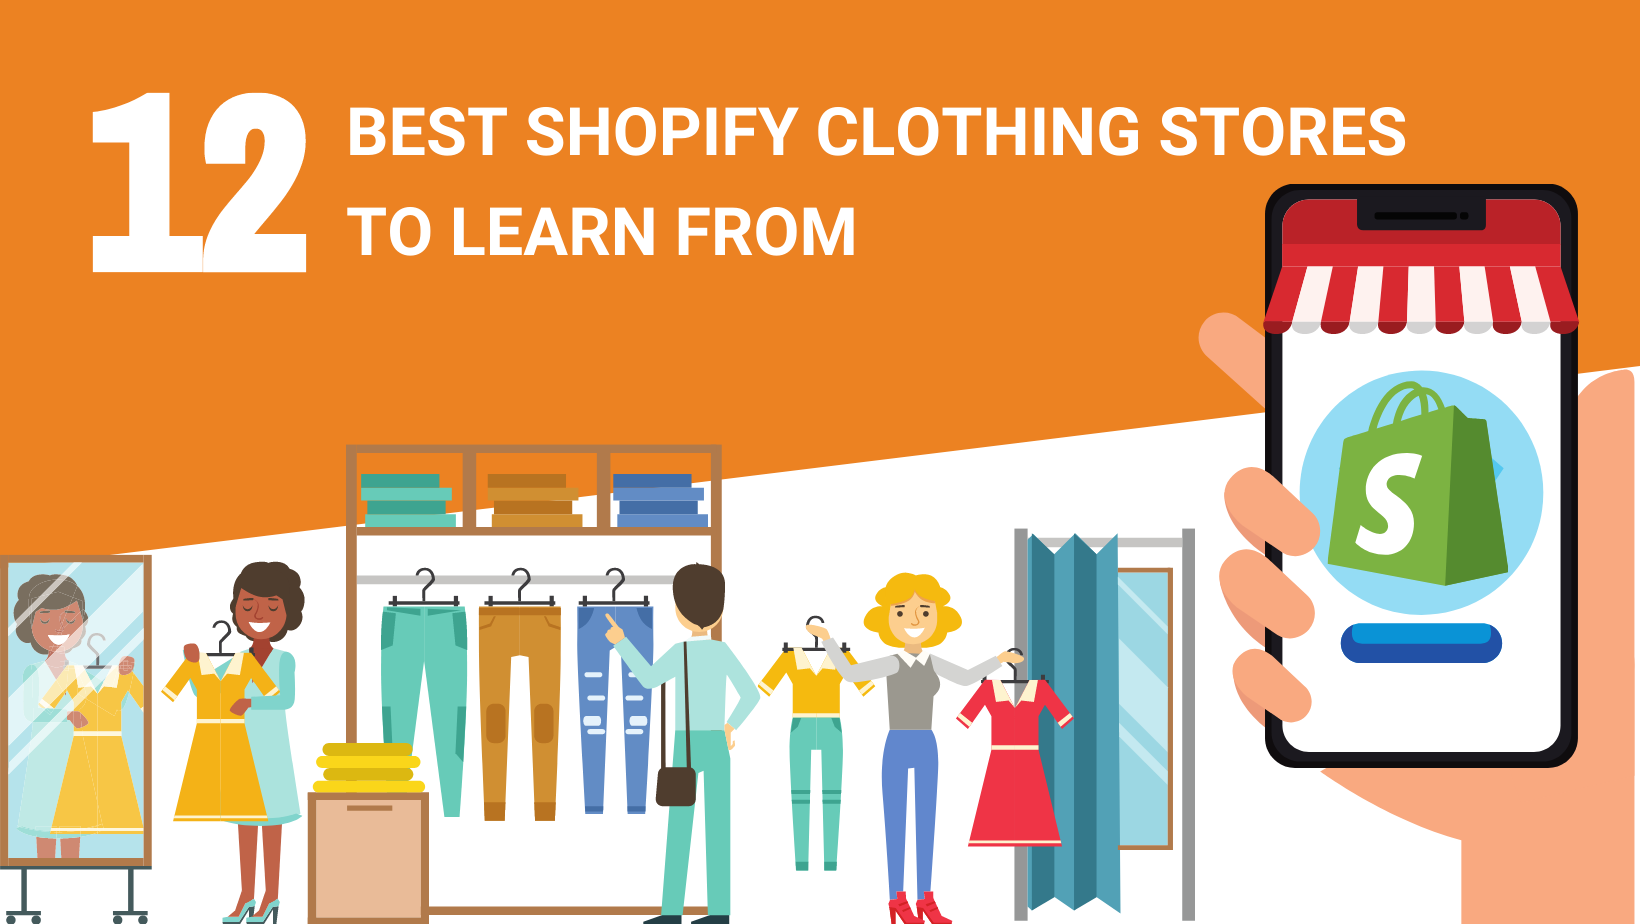 12 BEST SHOPIFY CLOTHING STORES TO LEARN FROM